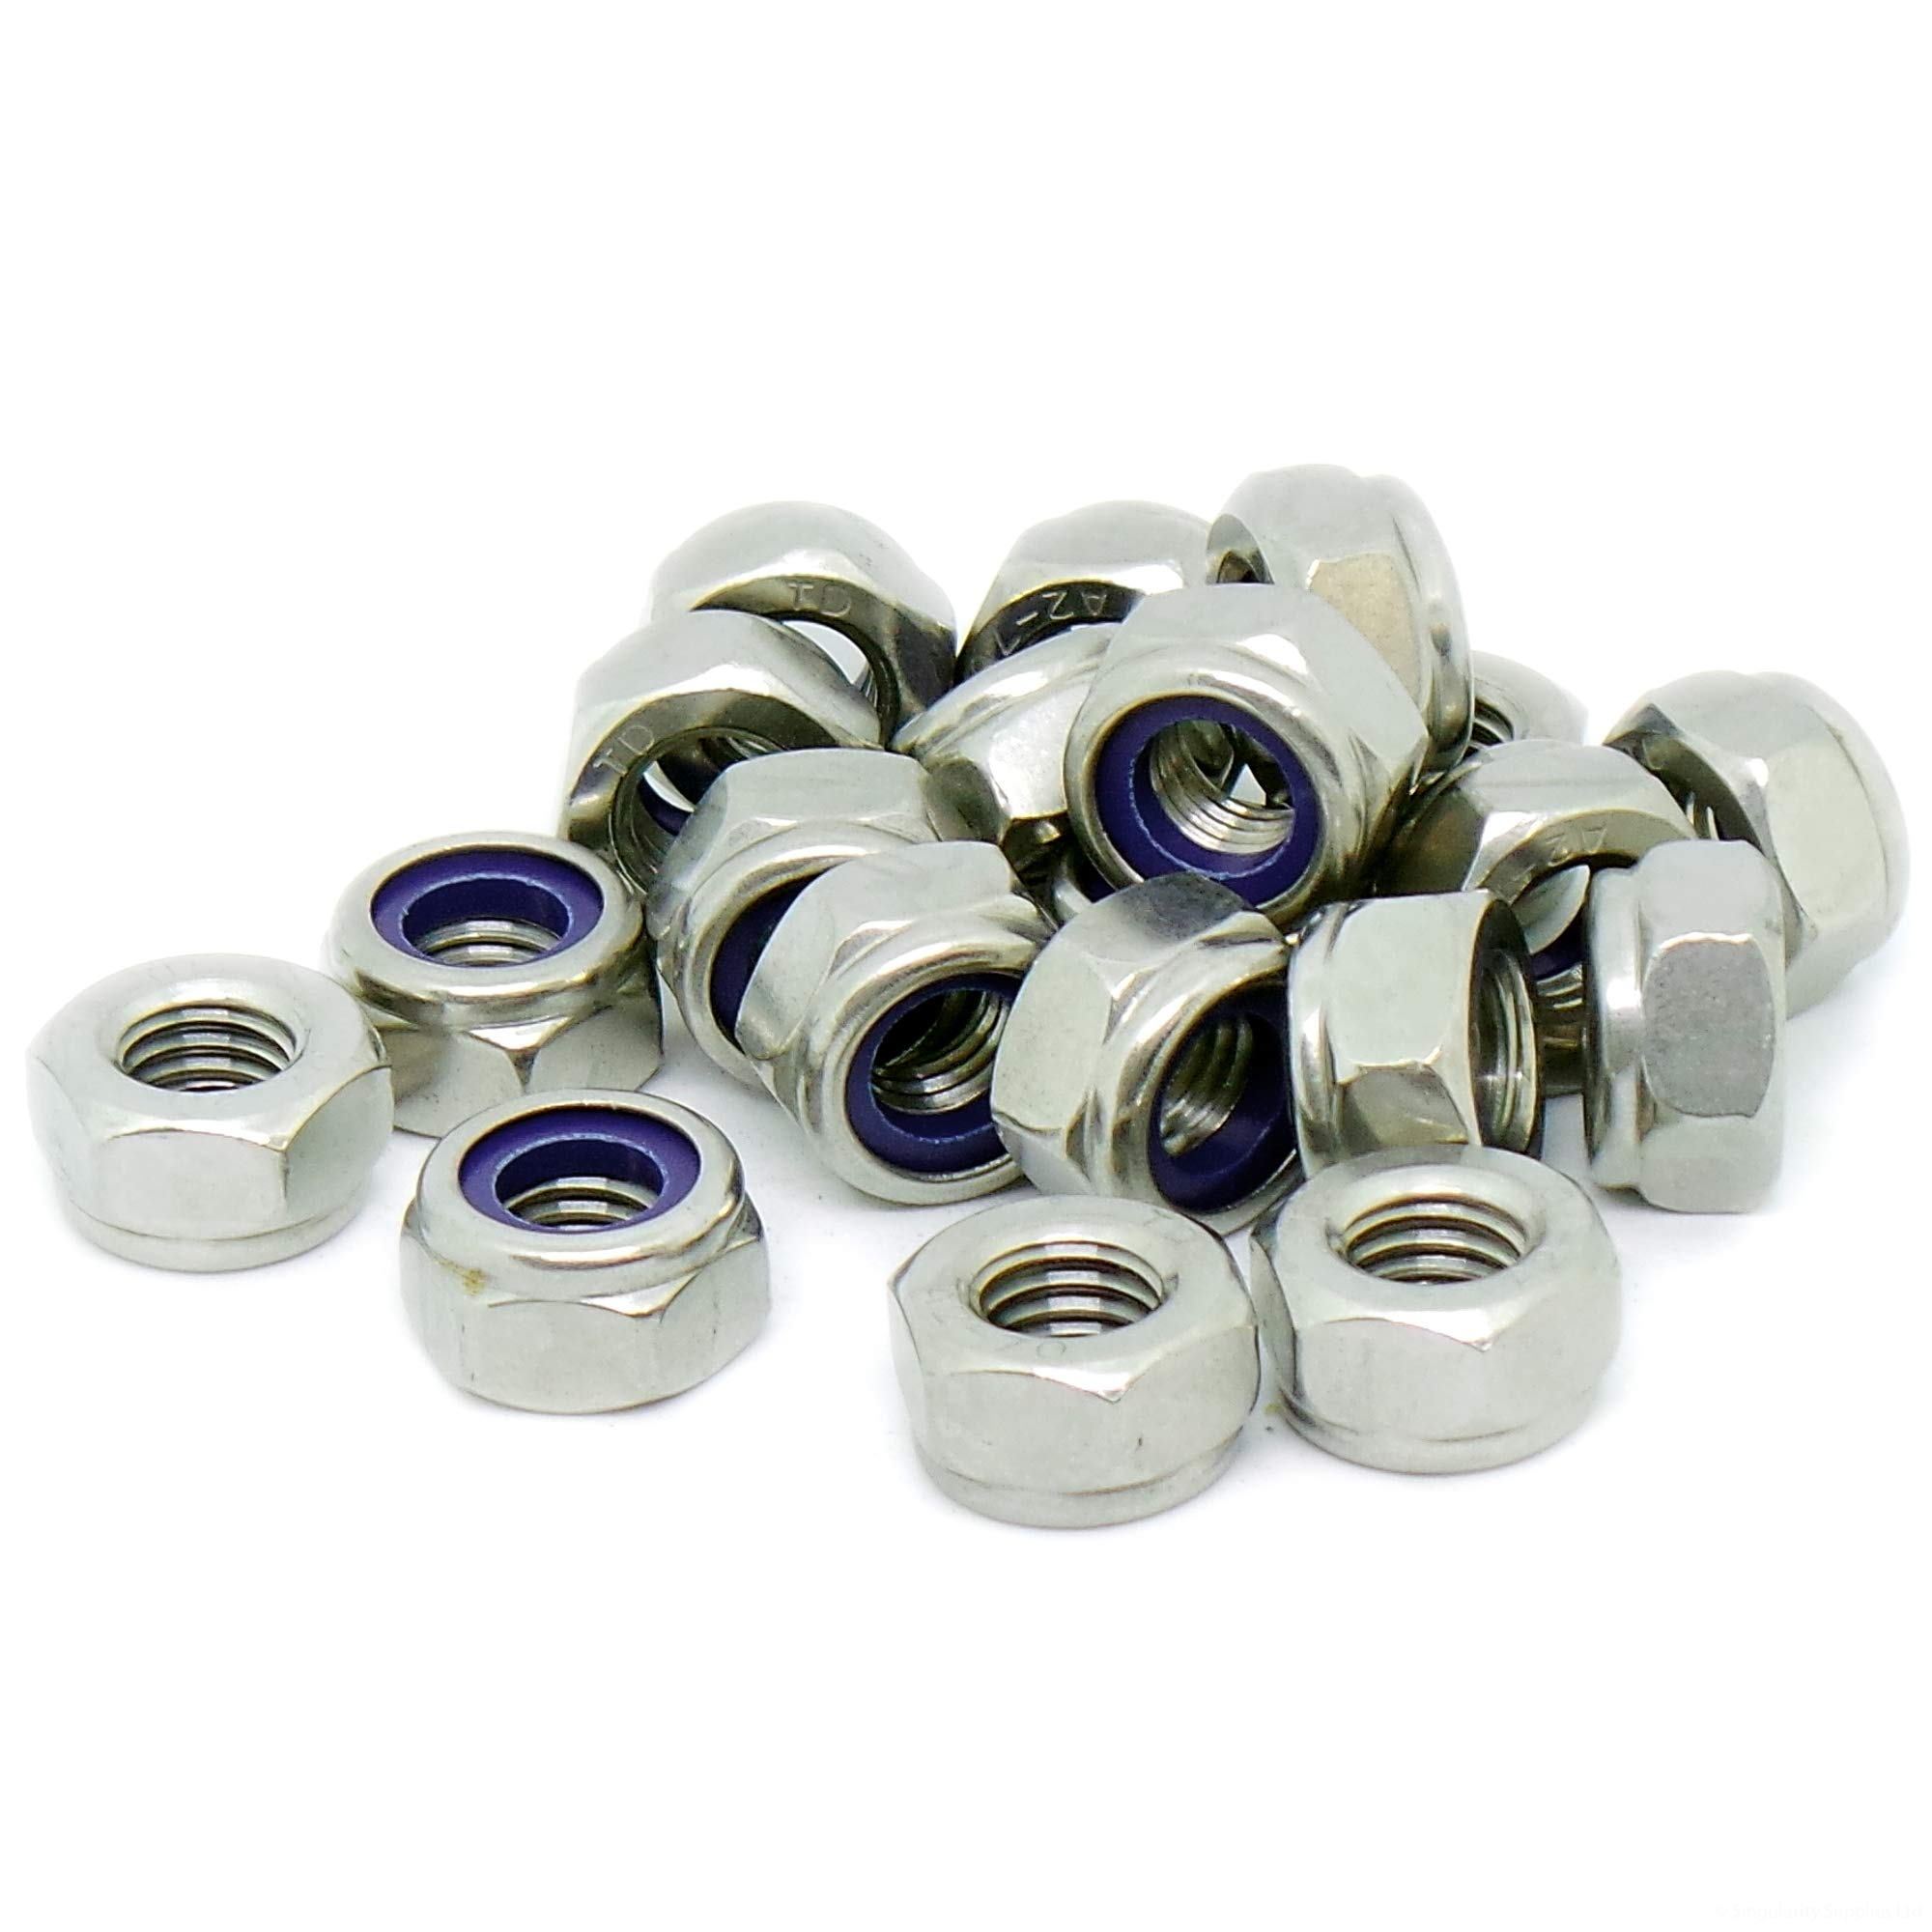 M10 Black Stainless Steel Nyloc Nuts To Fit Our Coloured Stainless Bolts Screws